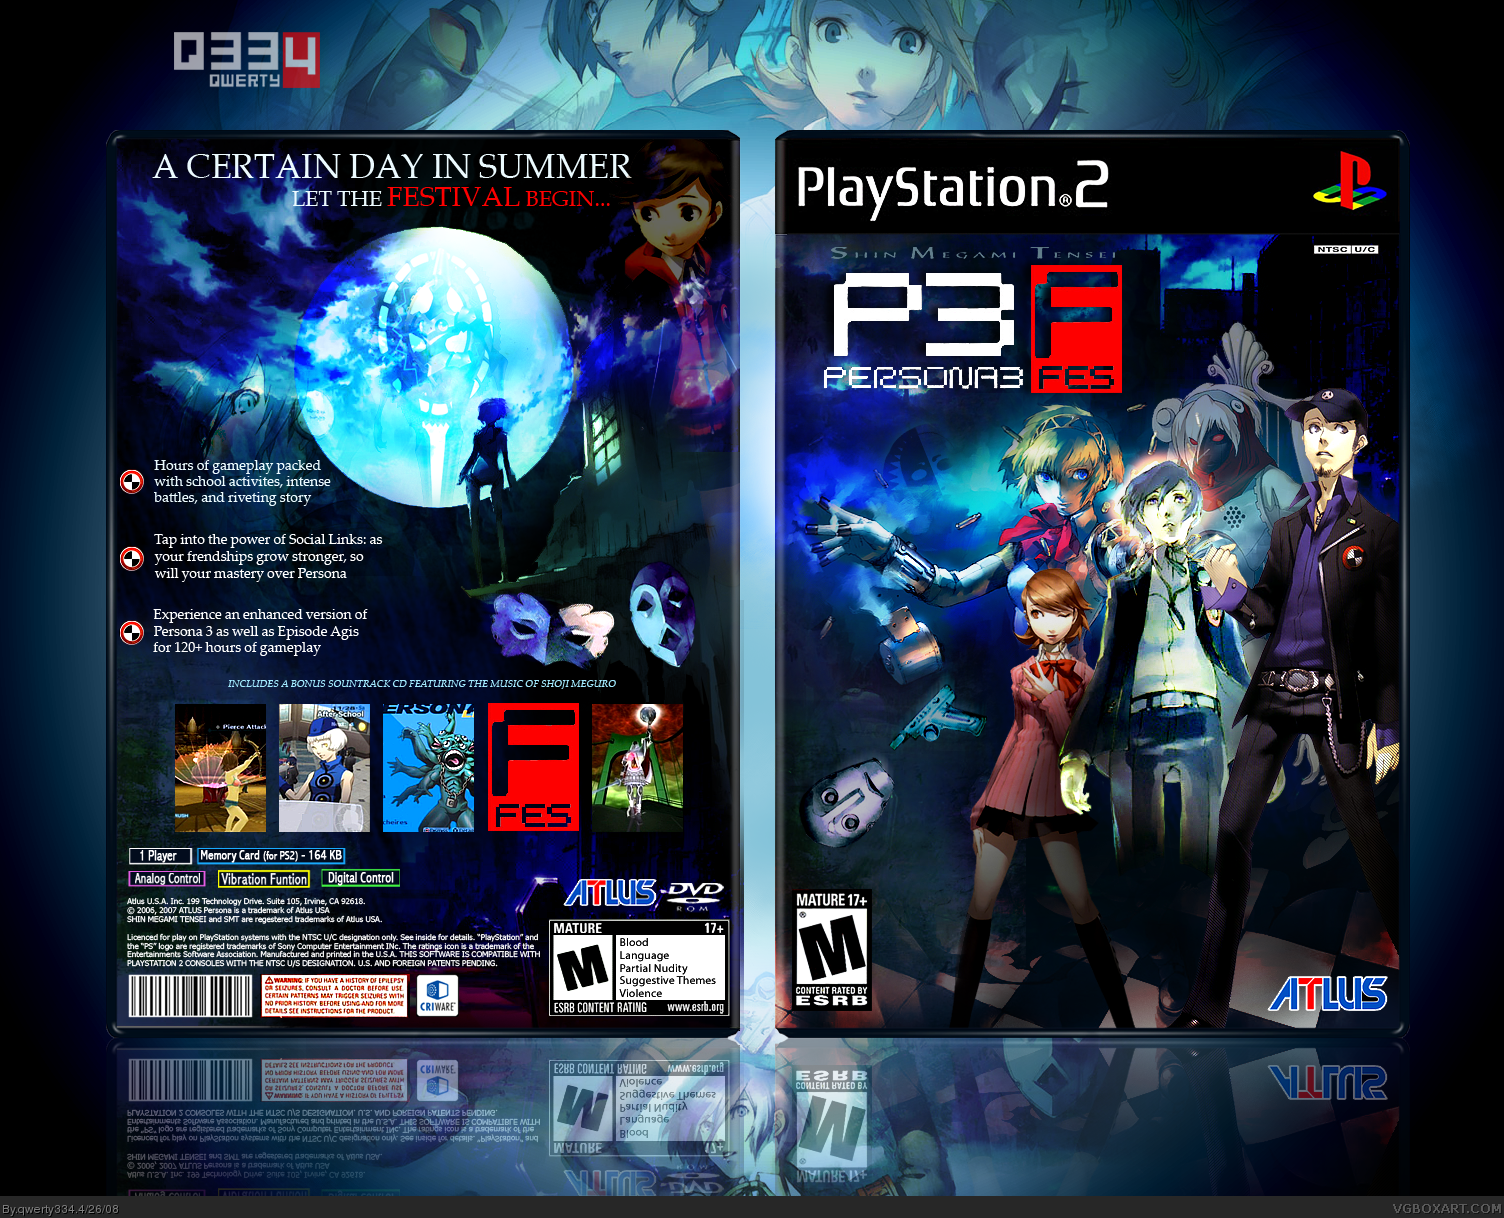 Persona 3 Fes Playstation 2 Box Art Cover By Qwerty334